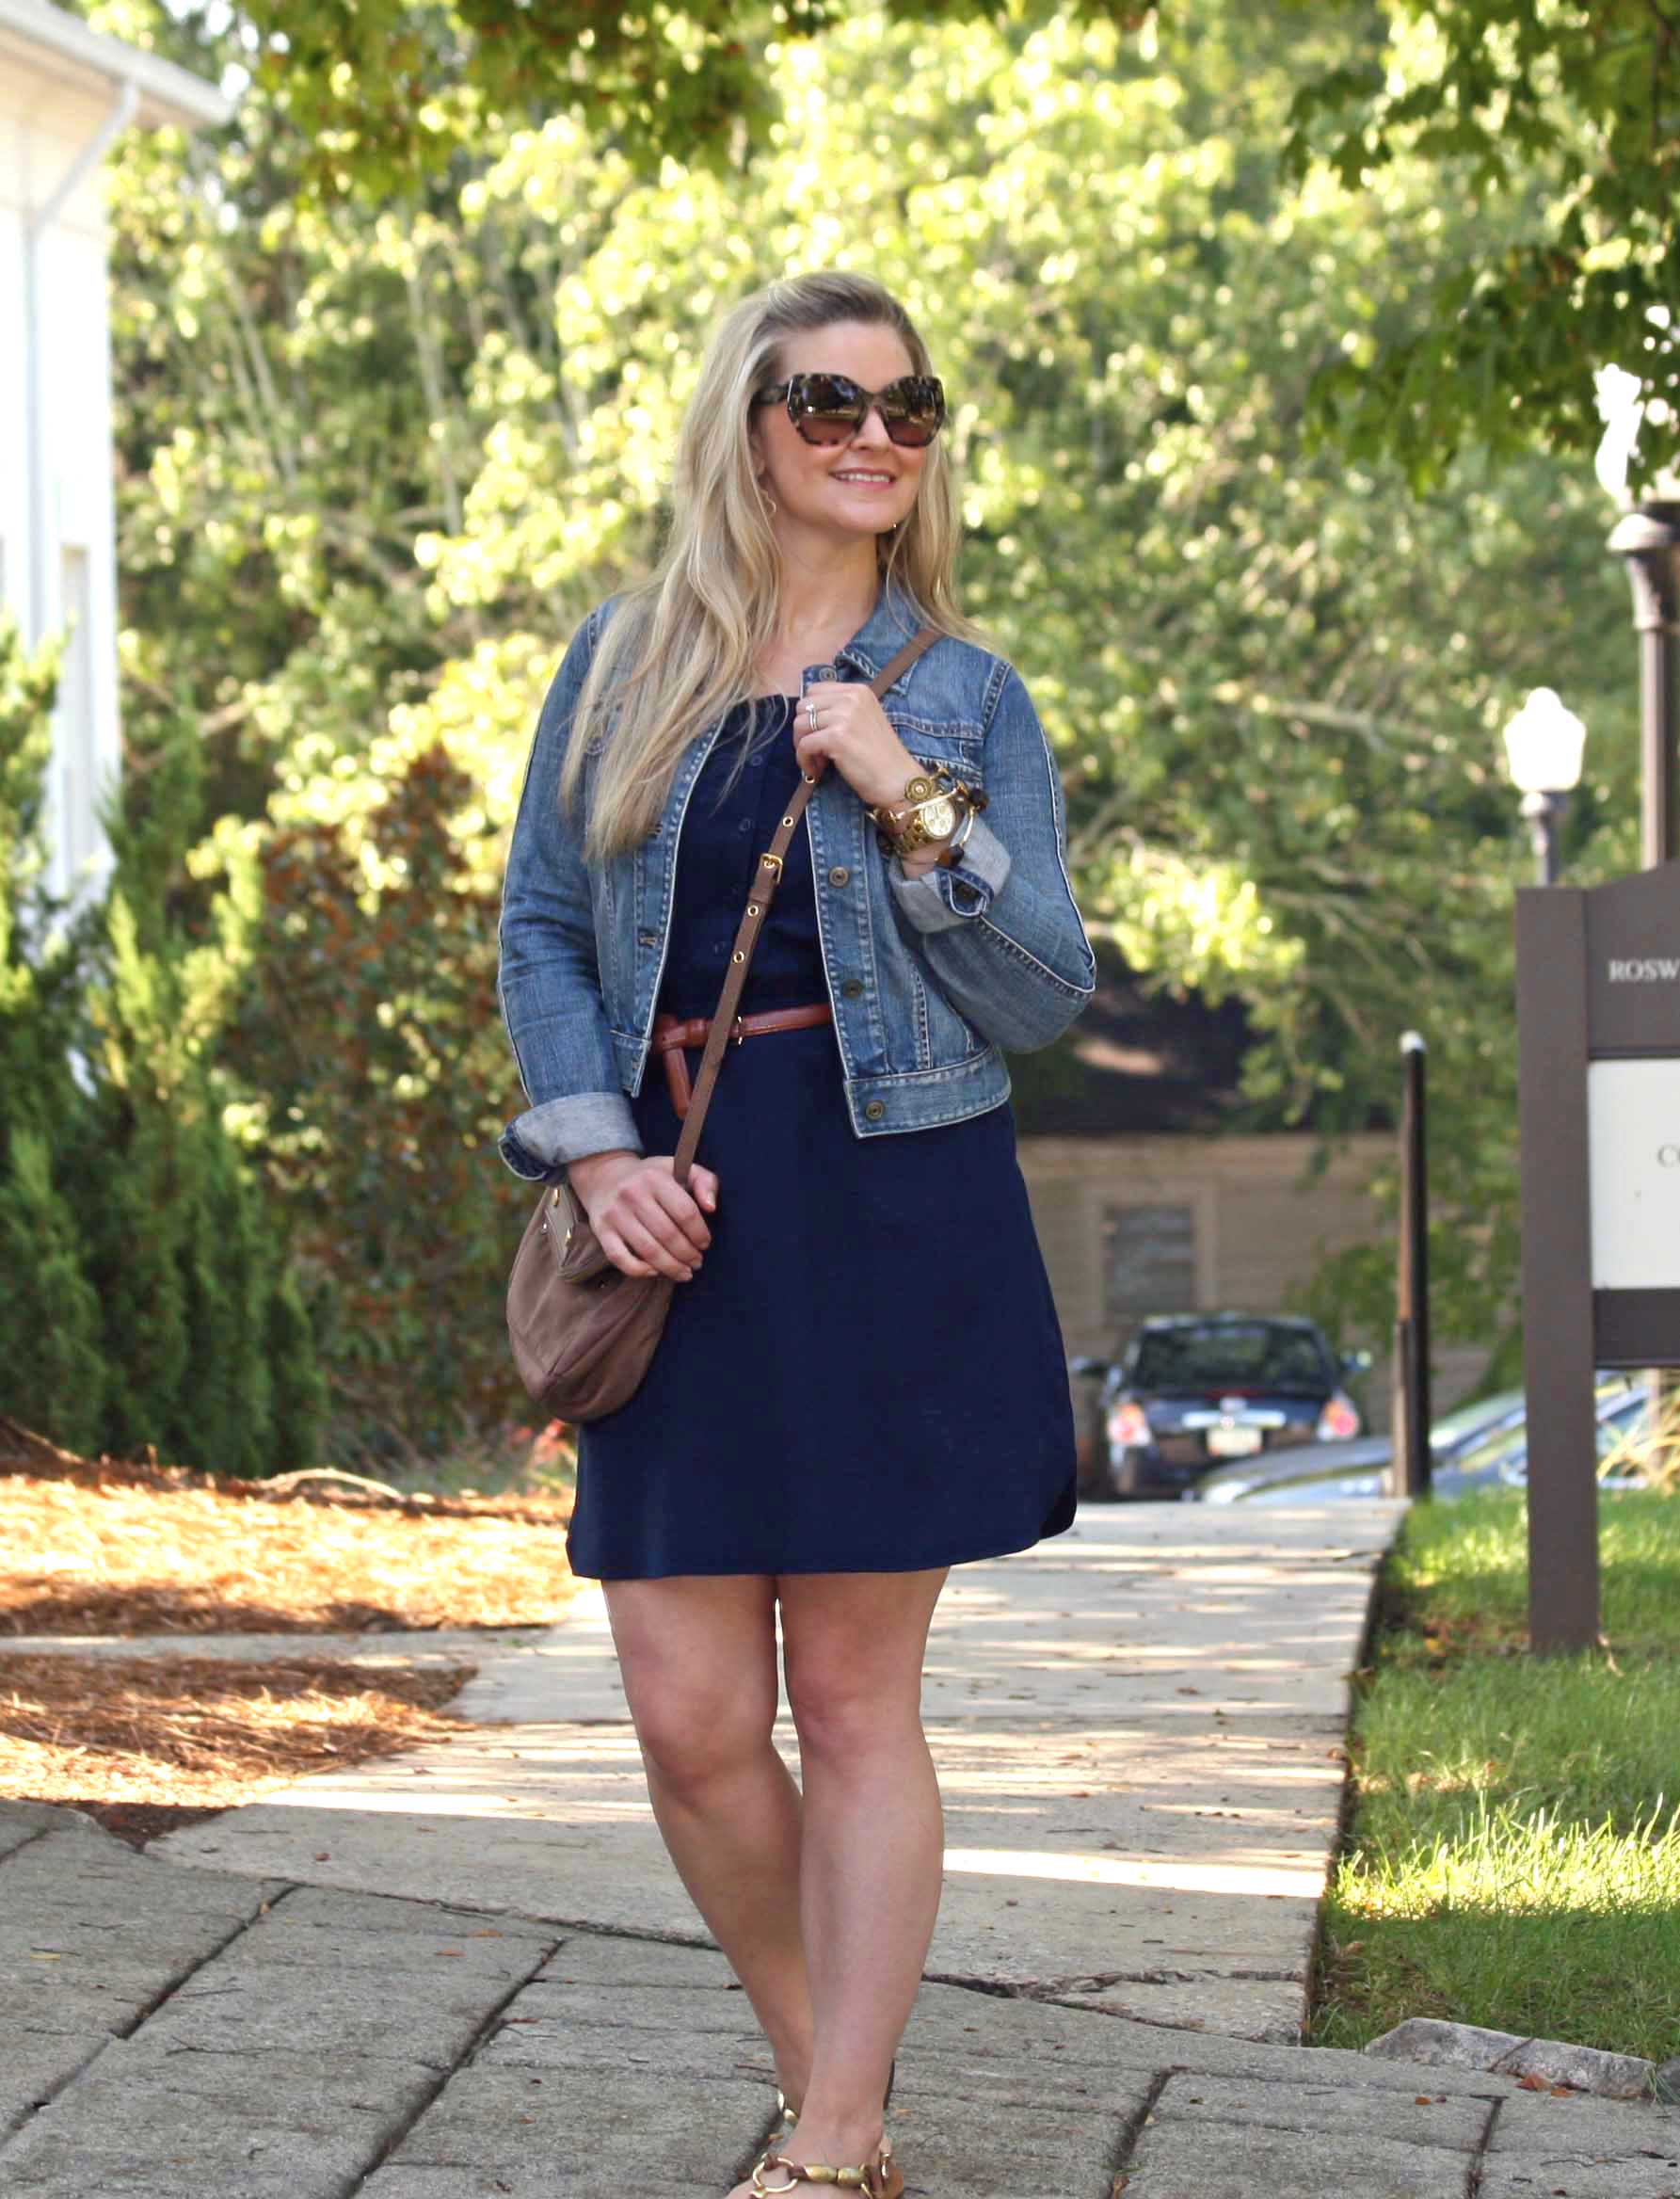 How to style a casual navy blue dress